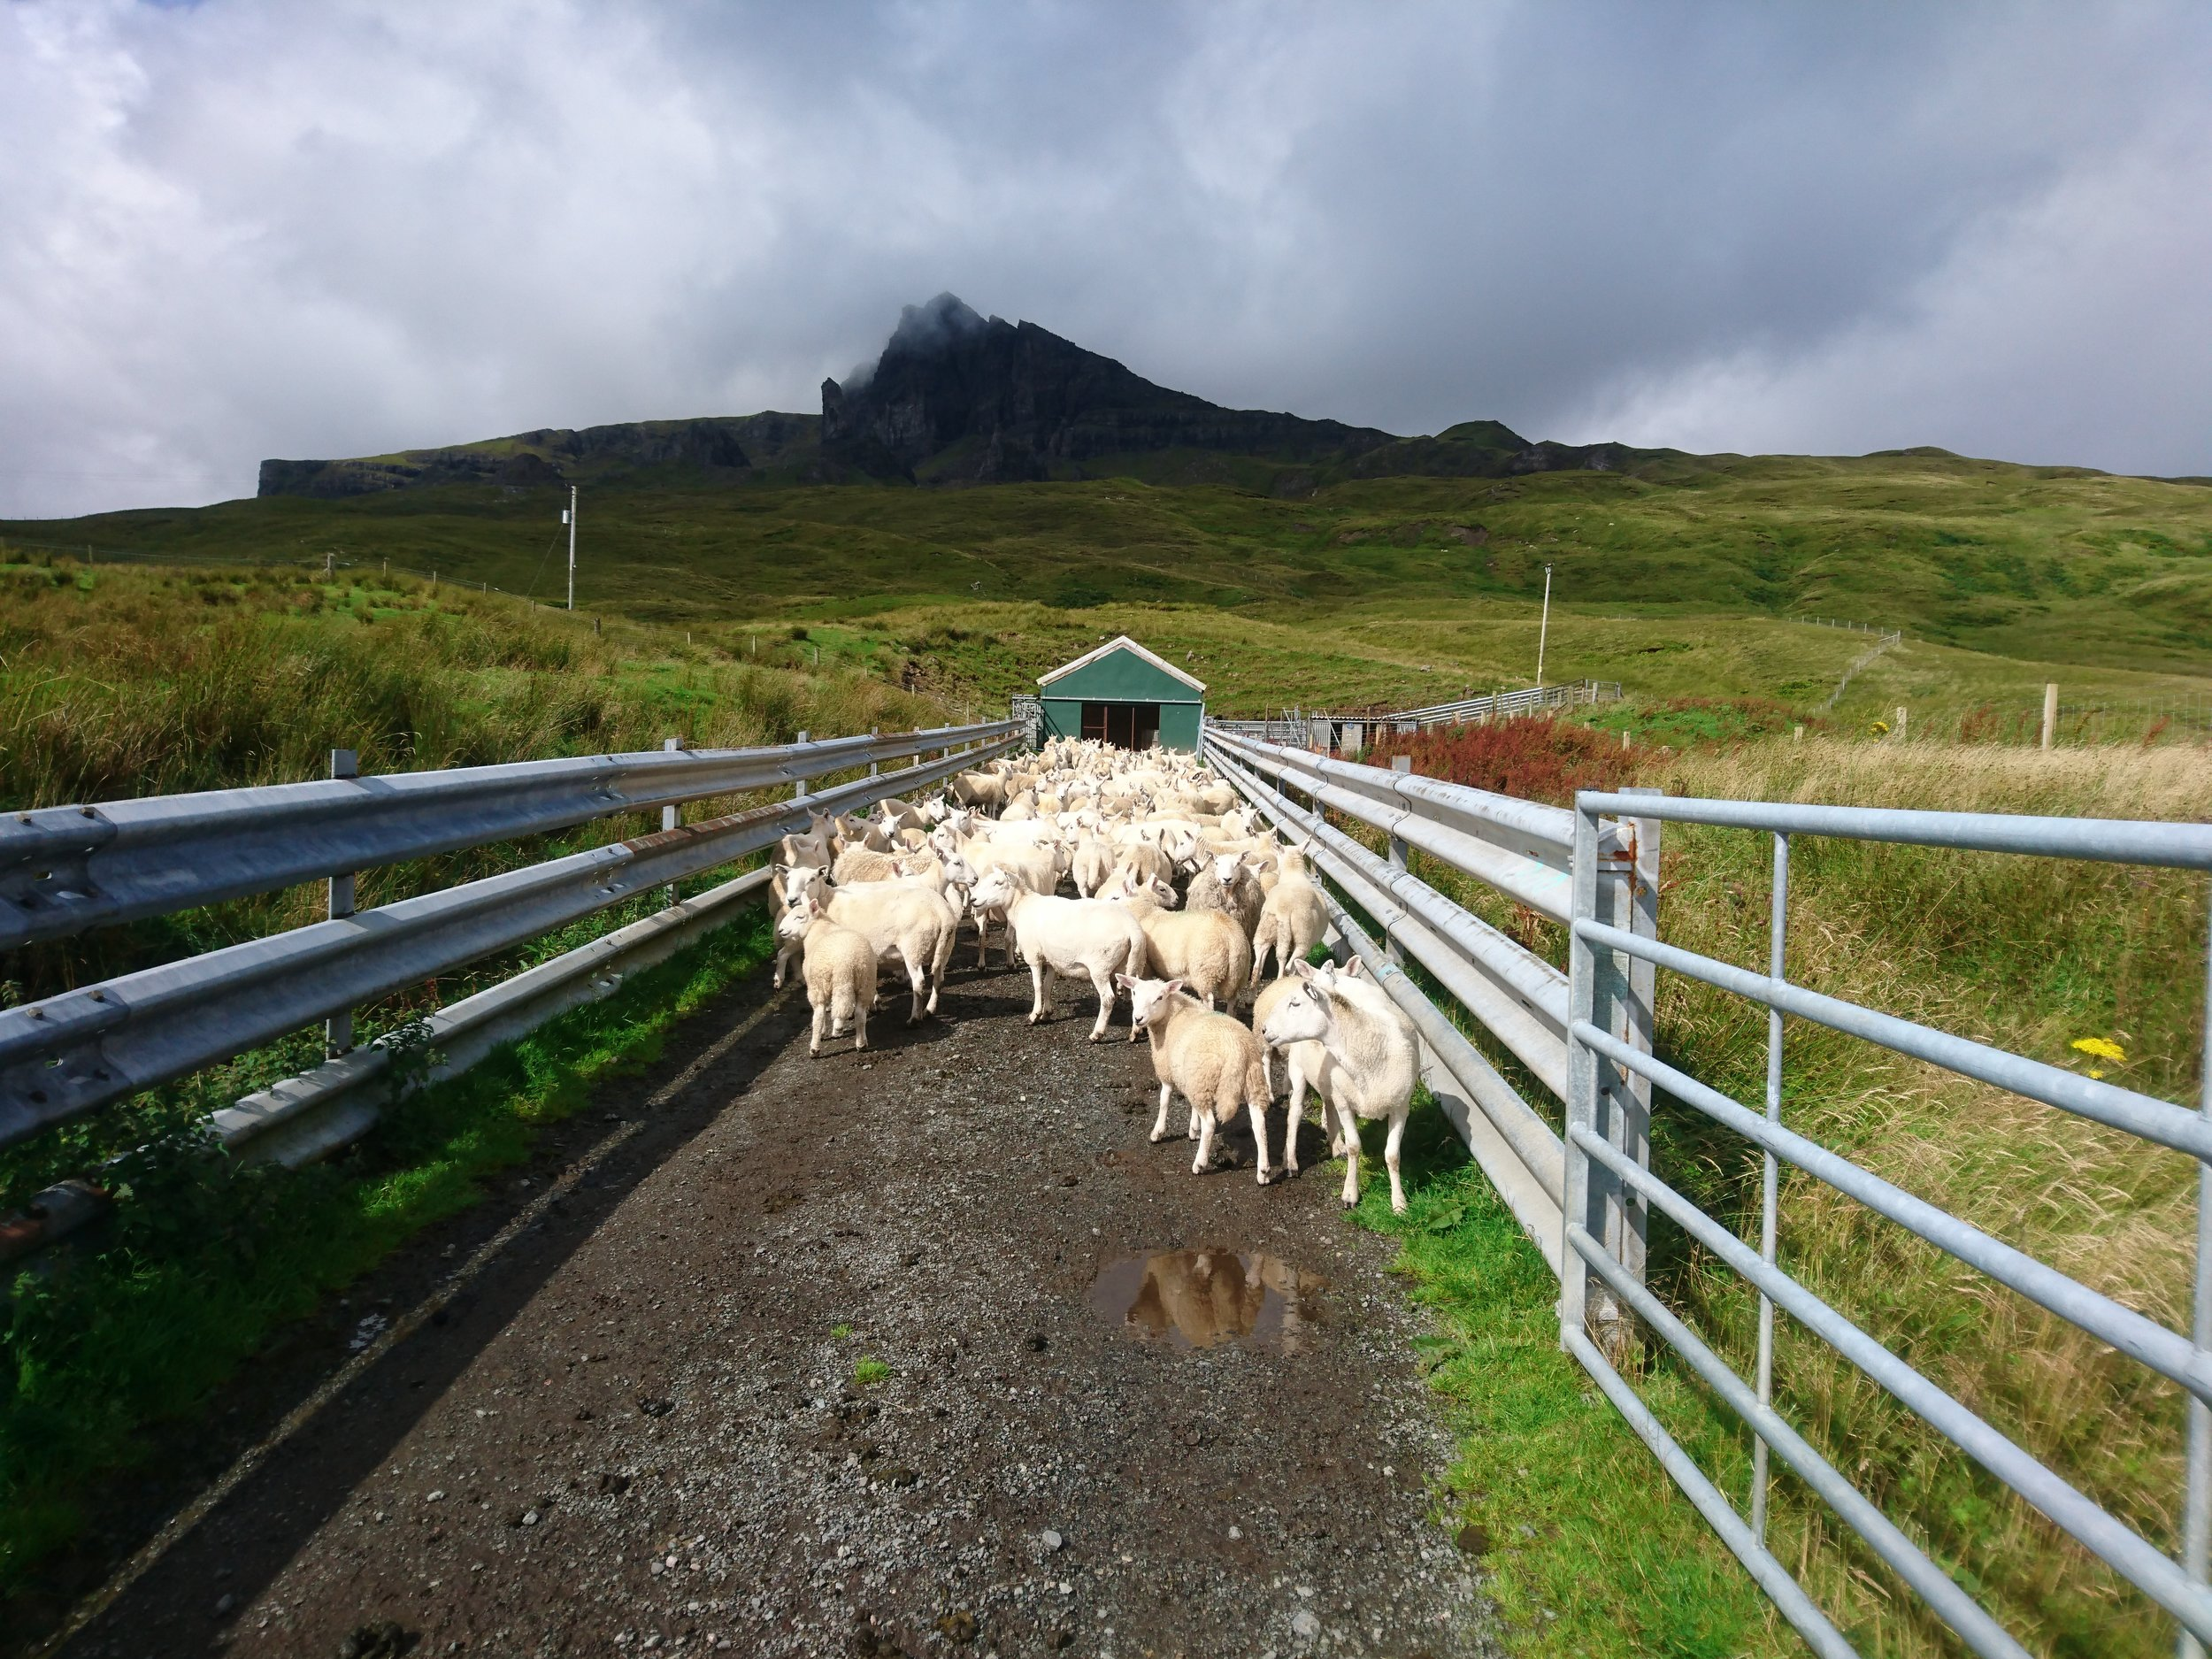 Sheep in front of Old Man of Storr